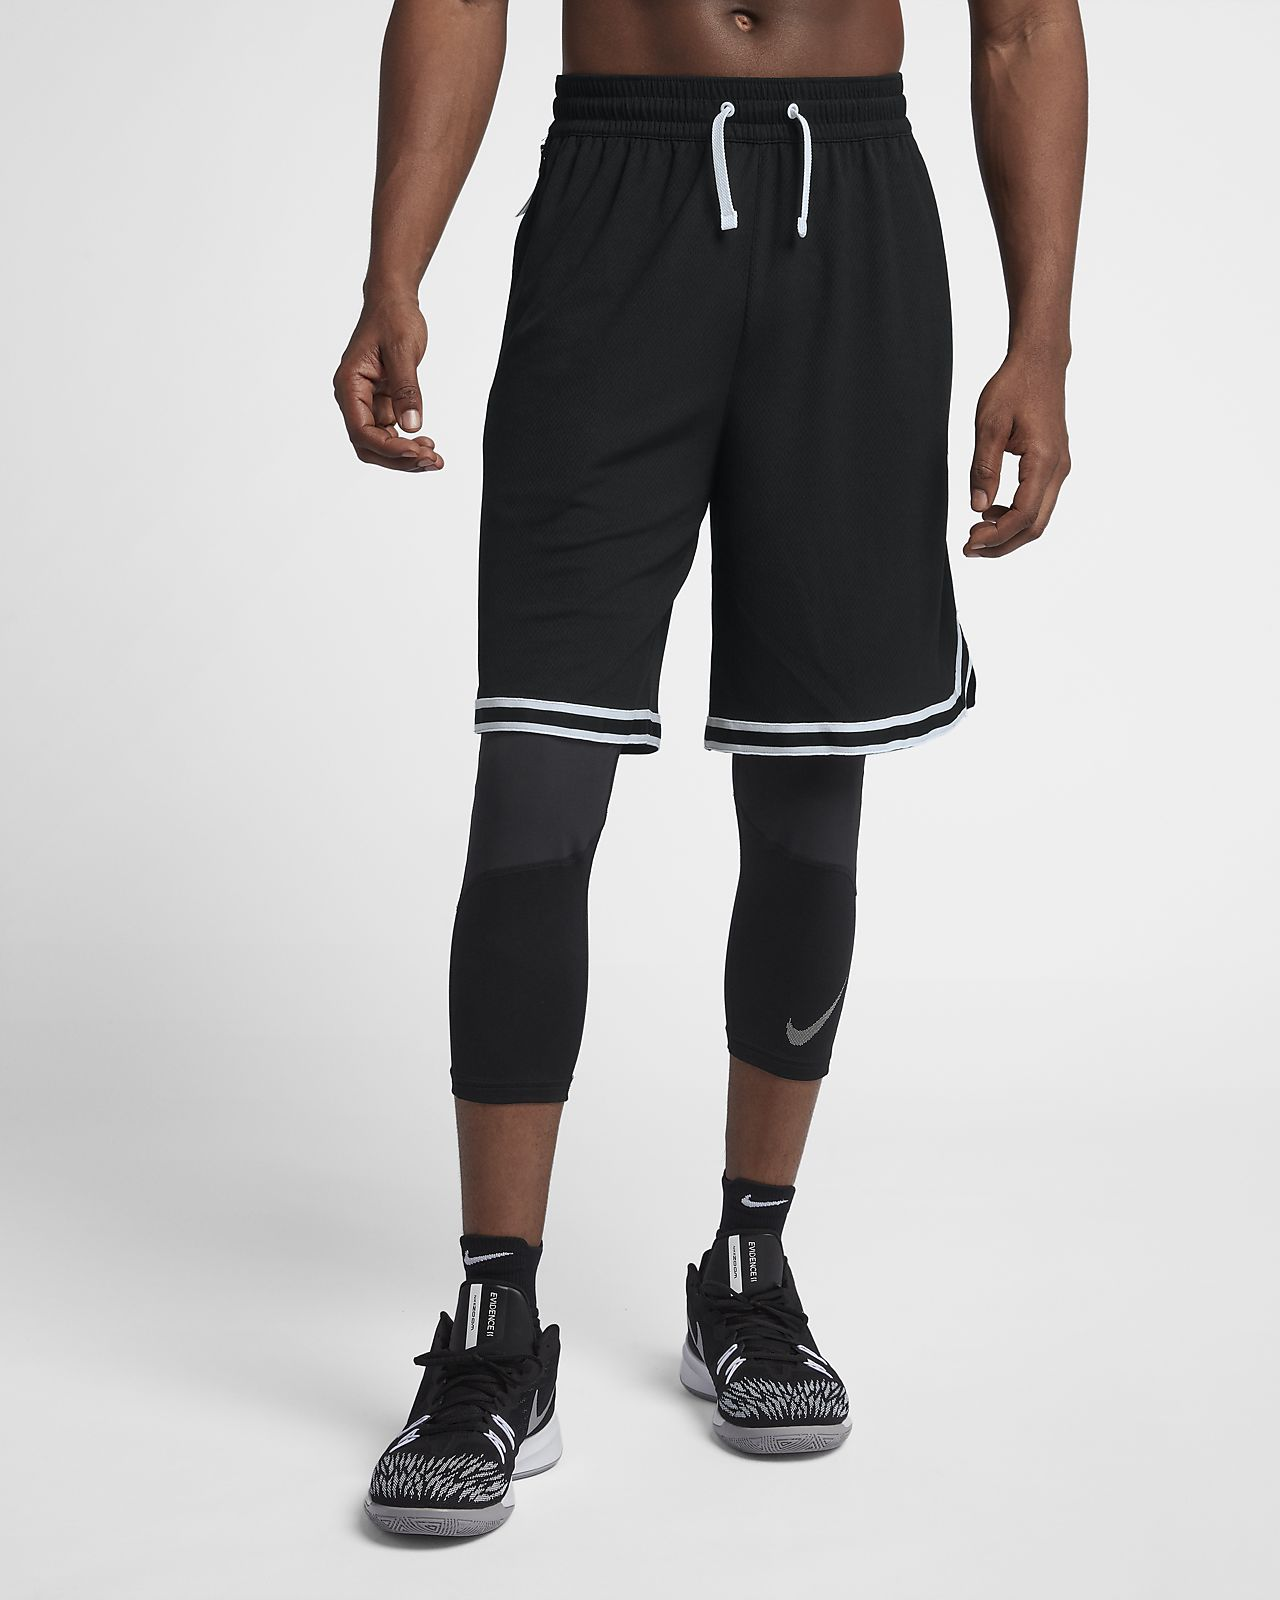 cheap for discount c94f7 a27c7 Men s Basketball Shorts. Nike Dri-FIT DNA